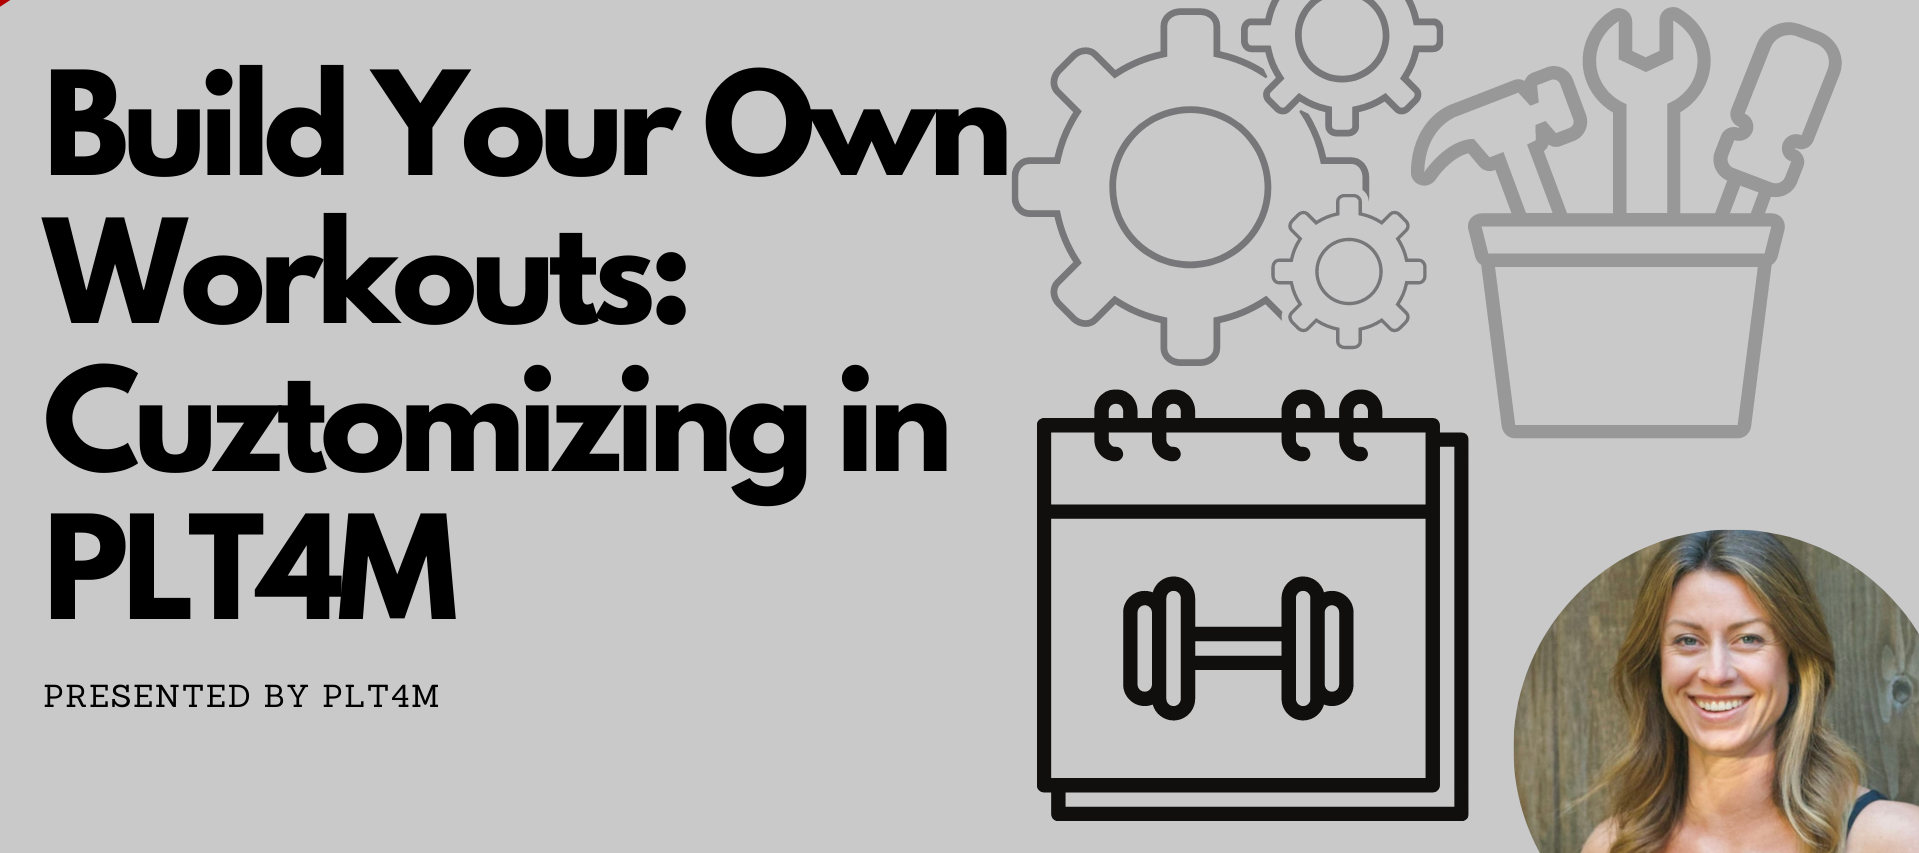 Build Your Own Workouts: Customizing in PLT4M